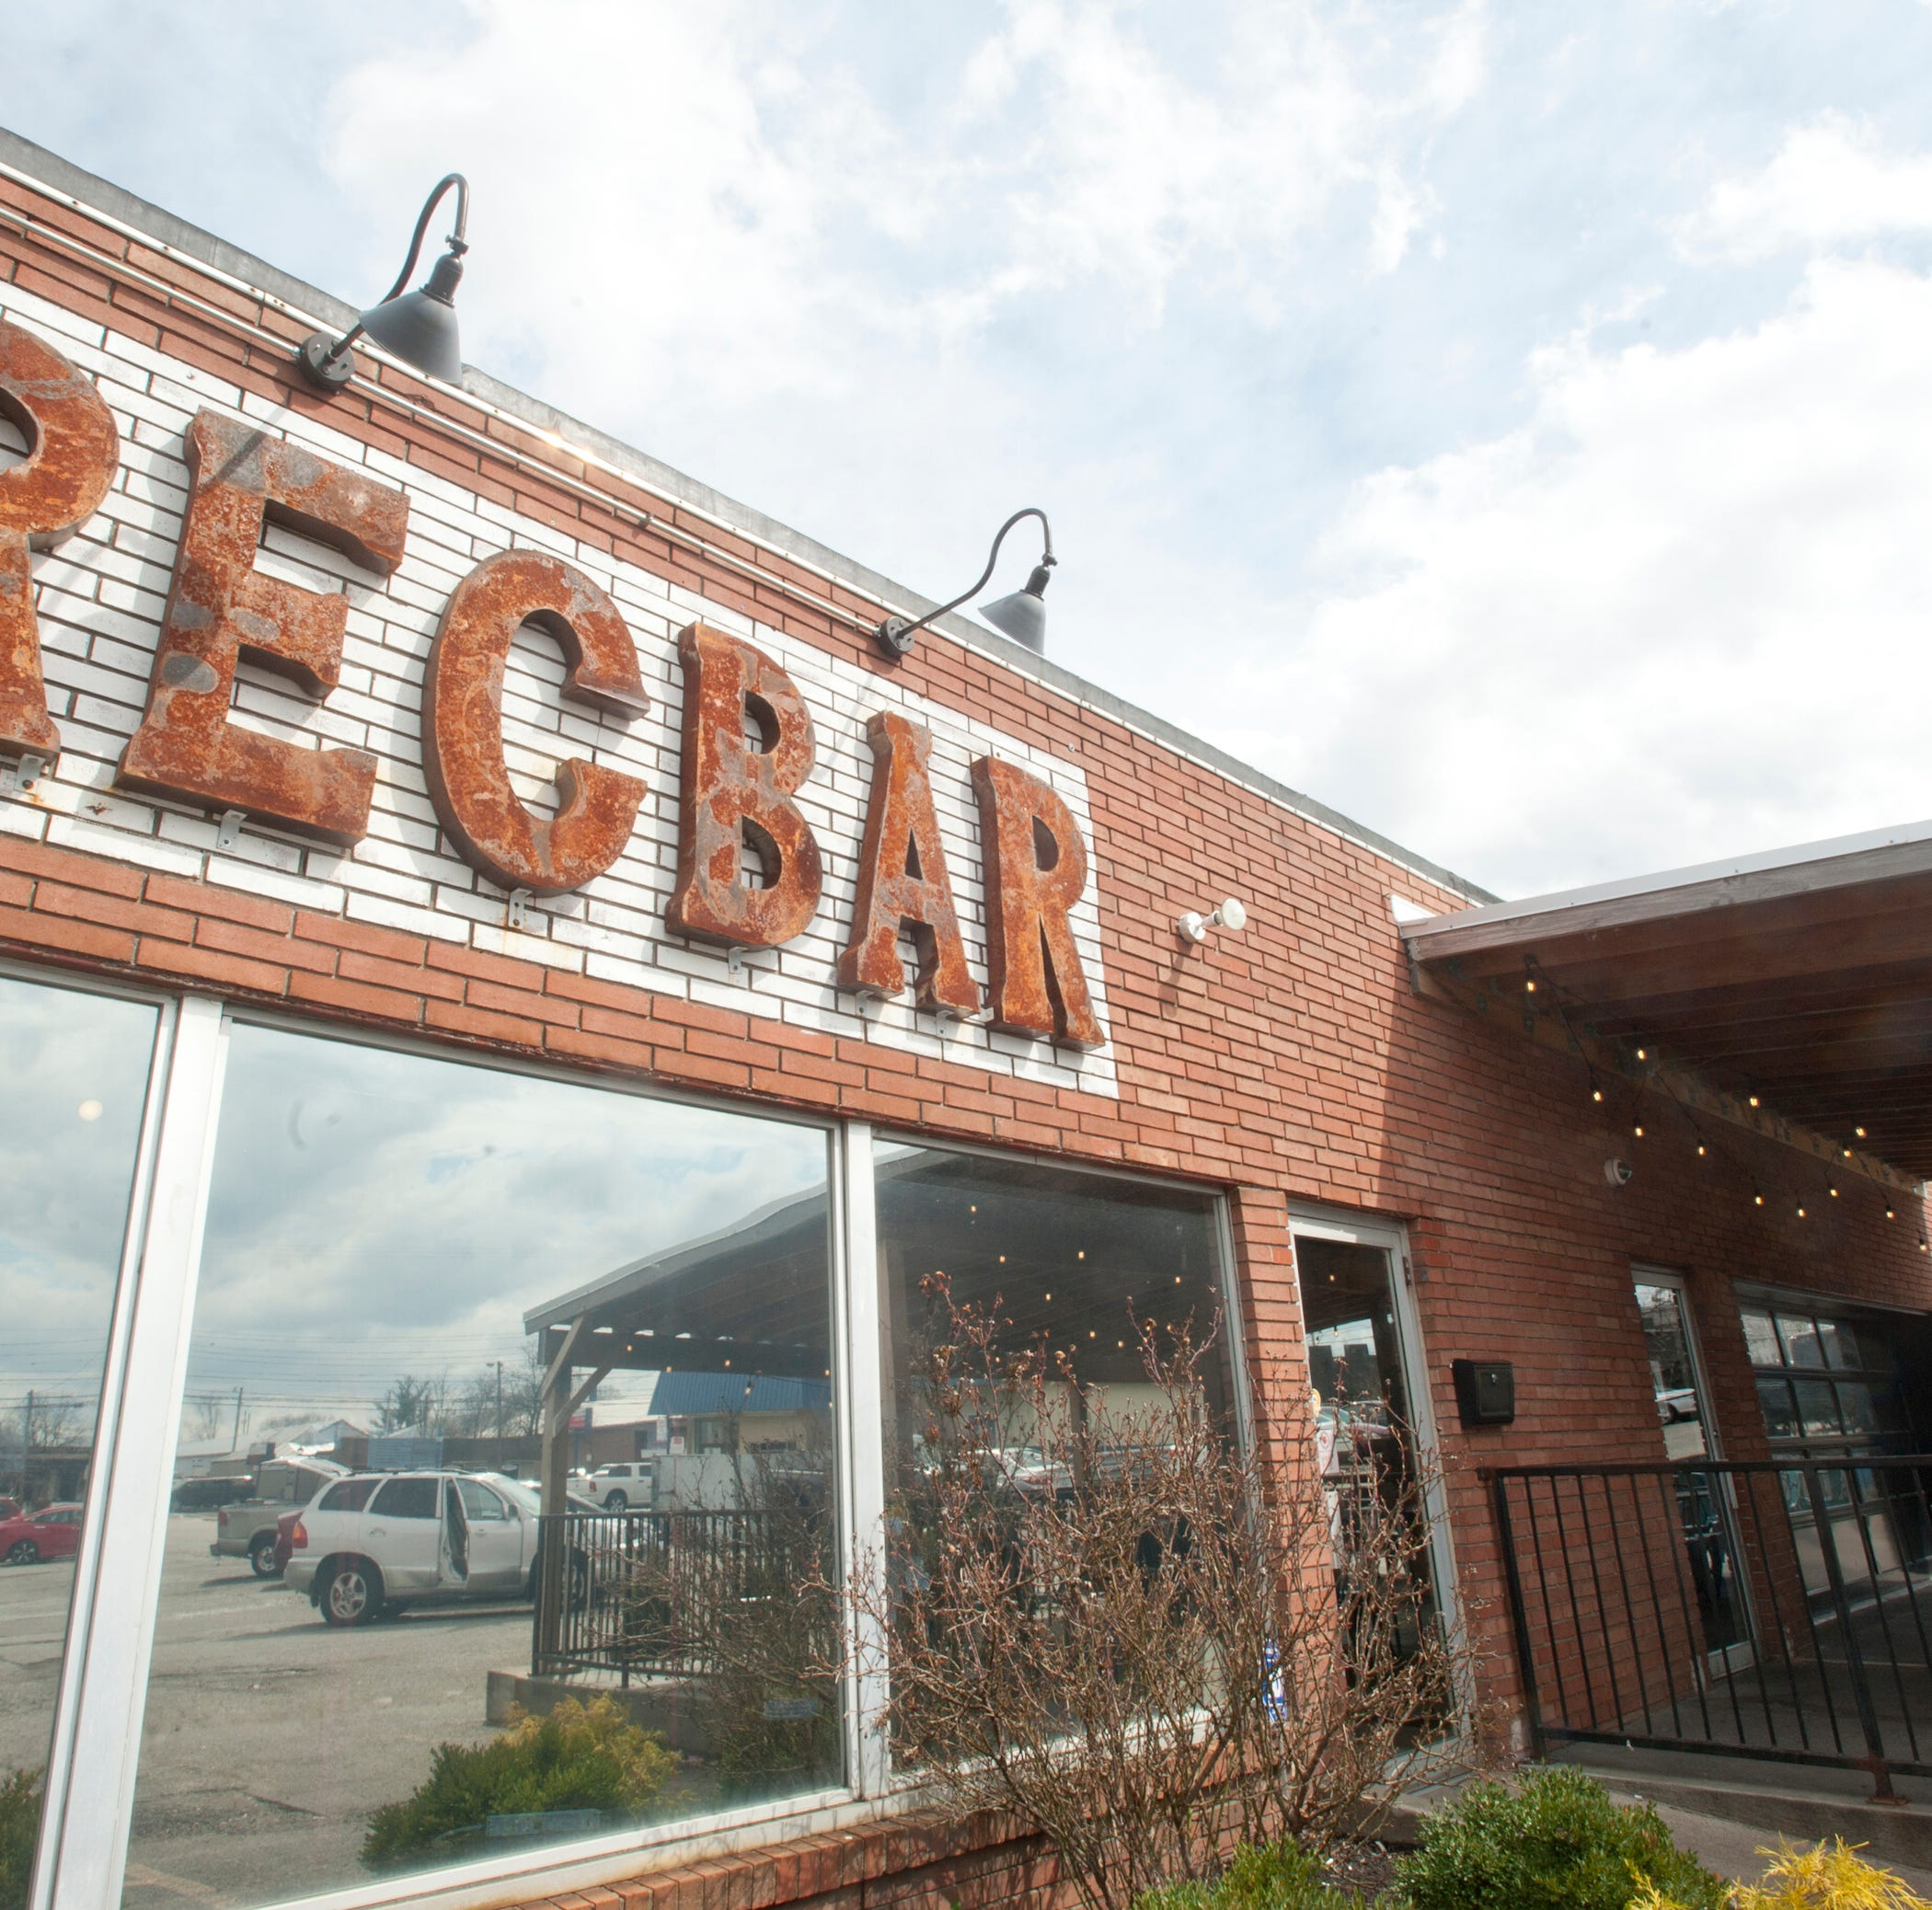 RecBar opening a second location that's double the size of the original